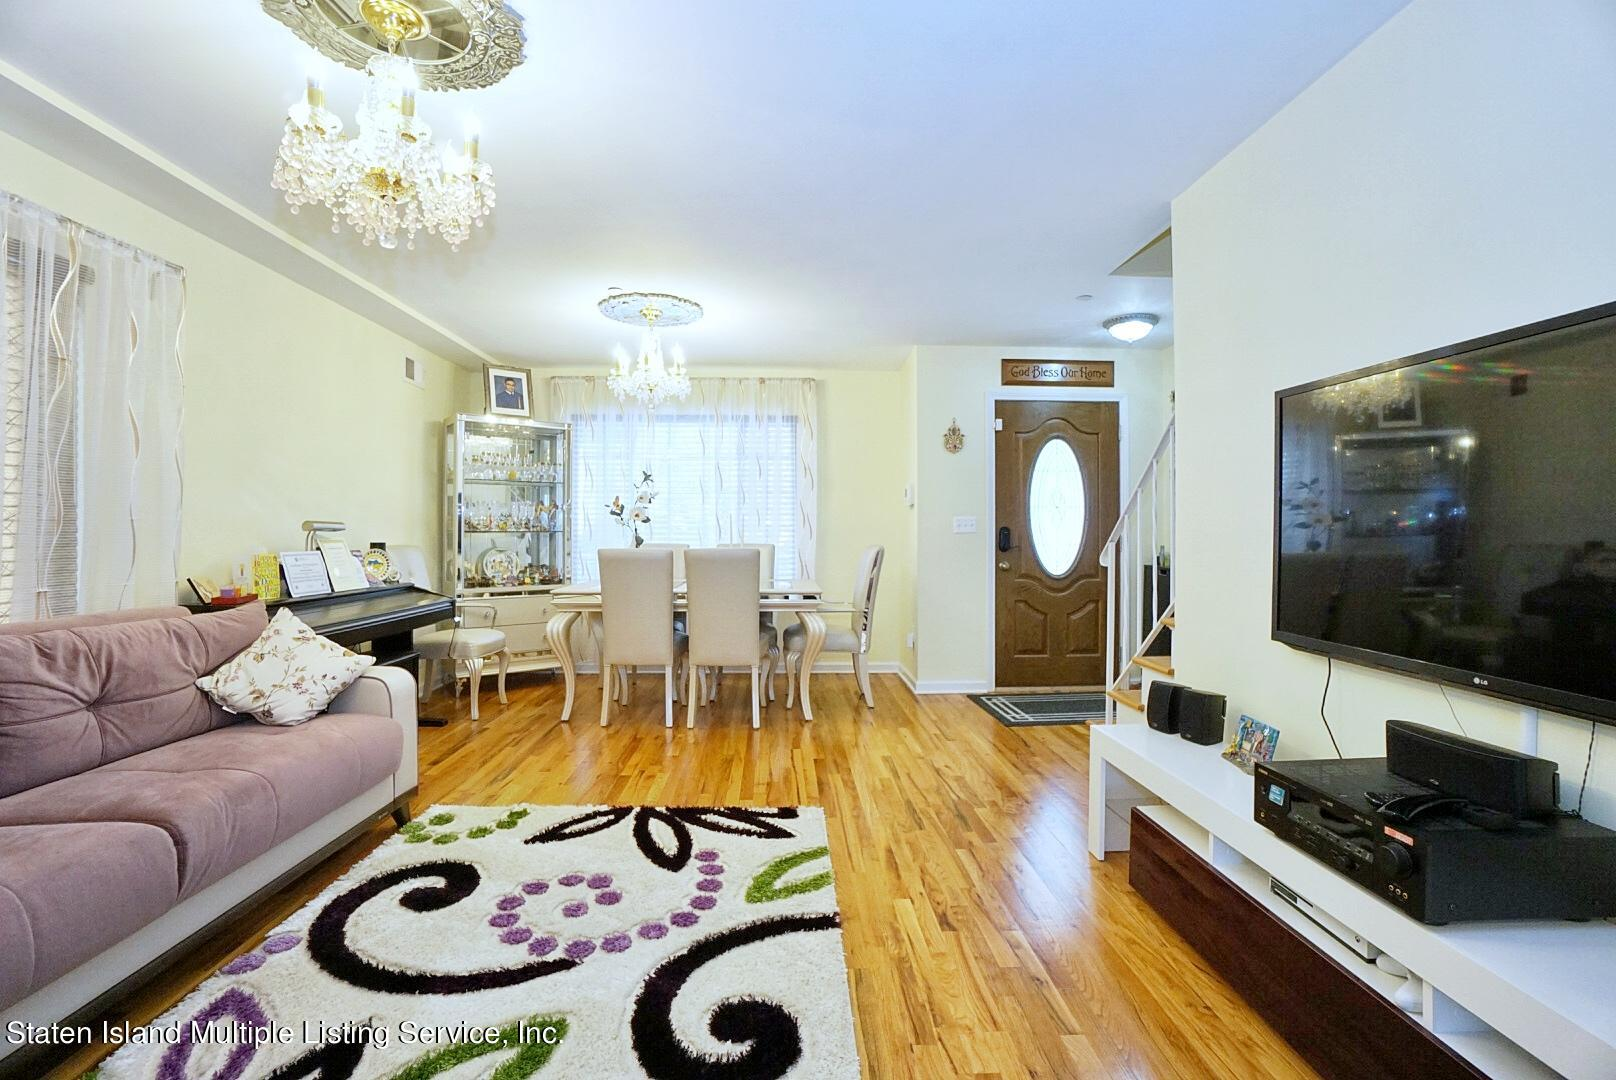 Single Family - Detached 171 Benziger Avenue  Staten Island, NY 10301, MLS-1145235-6